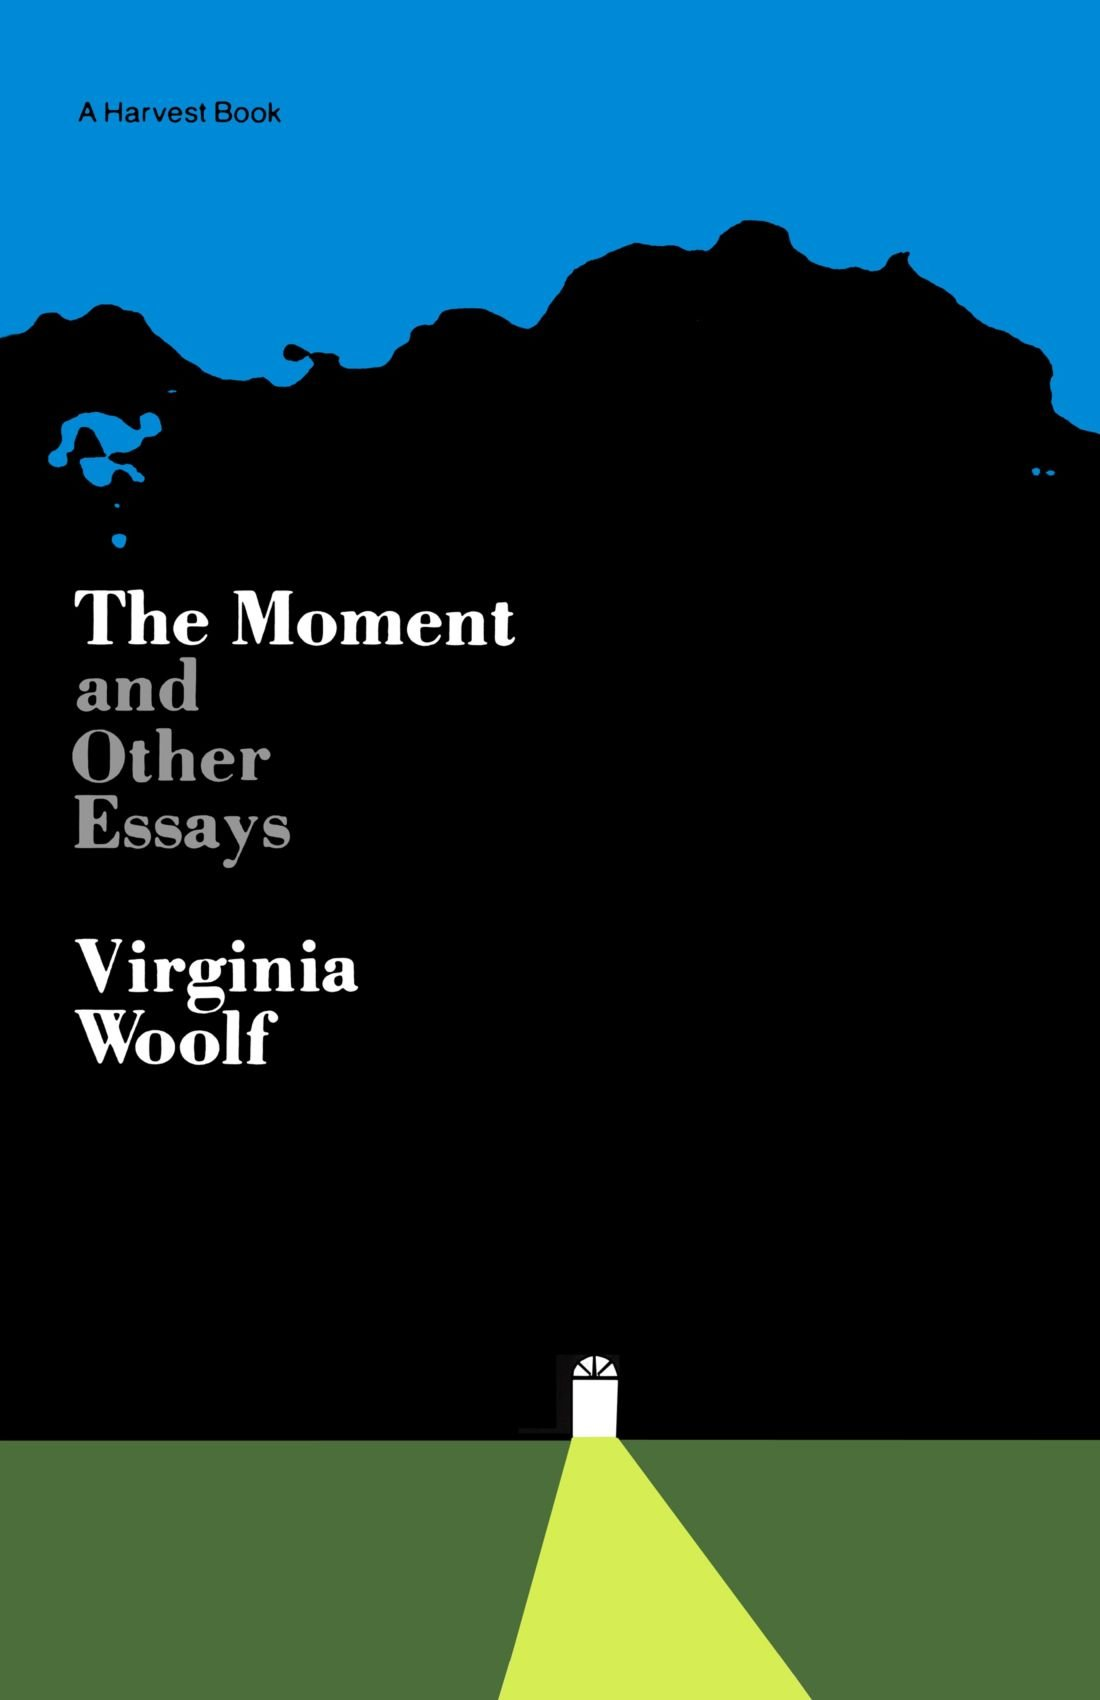 011 Virginia Woolf Essays Gs8rmzl Essay Unusual The Modern Pdf Woolf's Sketching Past Fiction Analysis Full